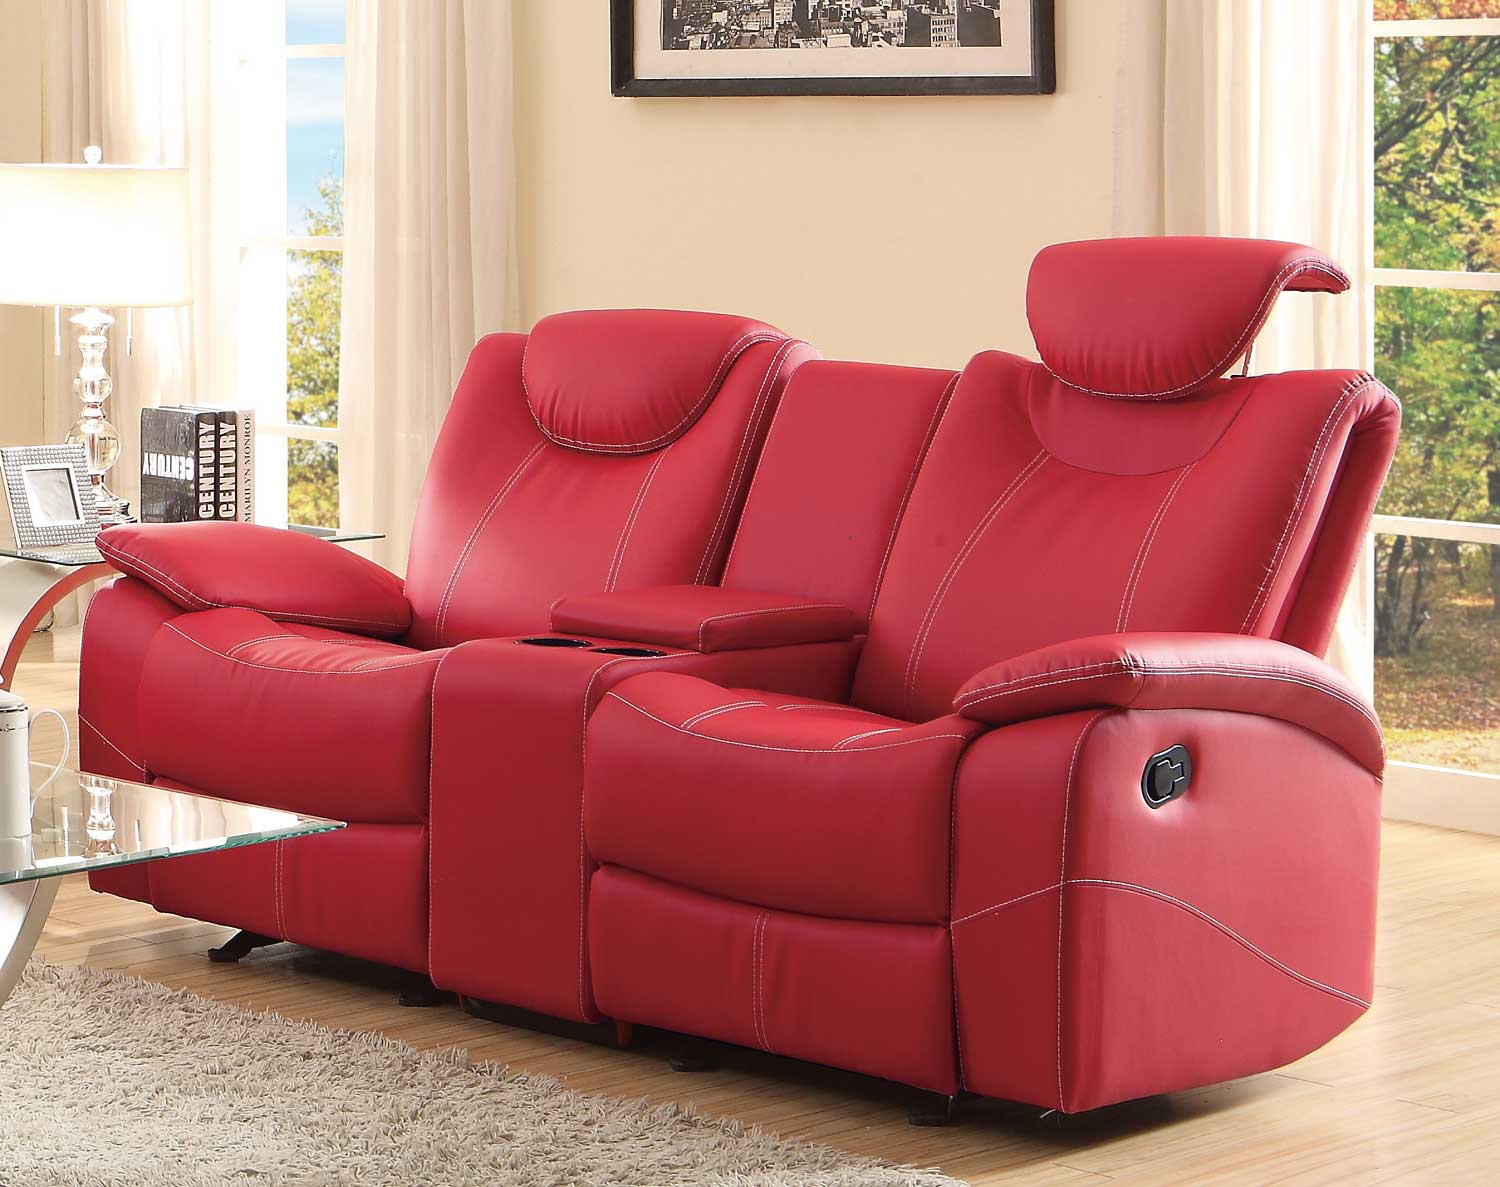 Homelegance Talbot Double Glider Reclining Love Seat With Center Console Red Bonded Leather